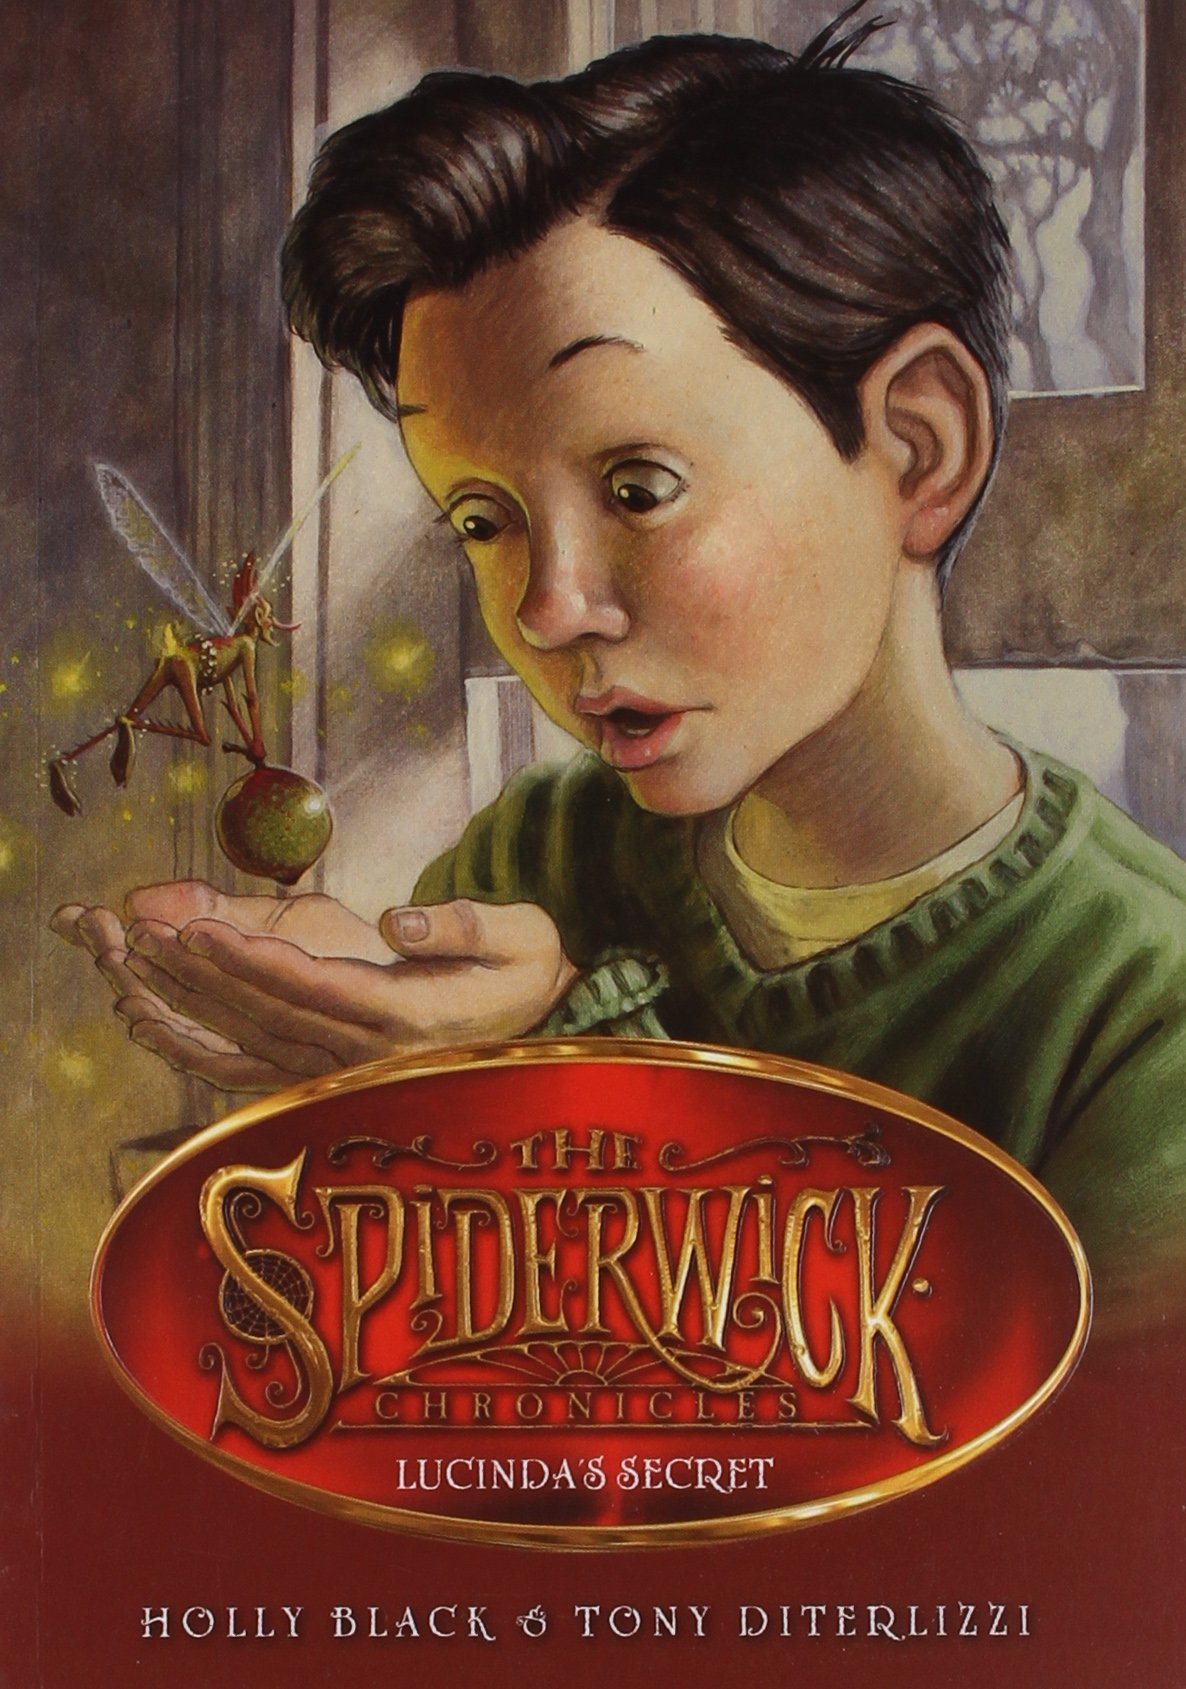 Download Lucinda's Secret. Tony Diterlizzi and Holly Black (SPIDERWICK CHRONICLE) PDF